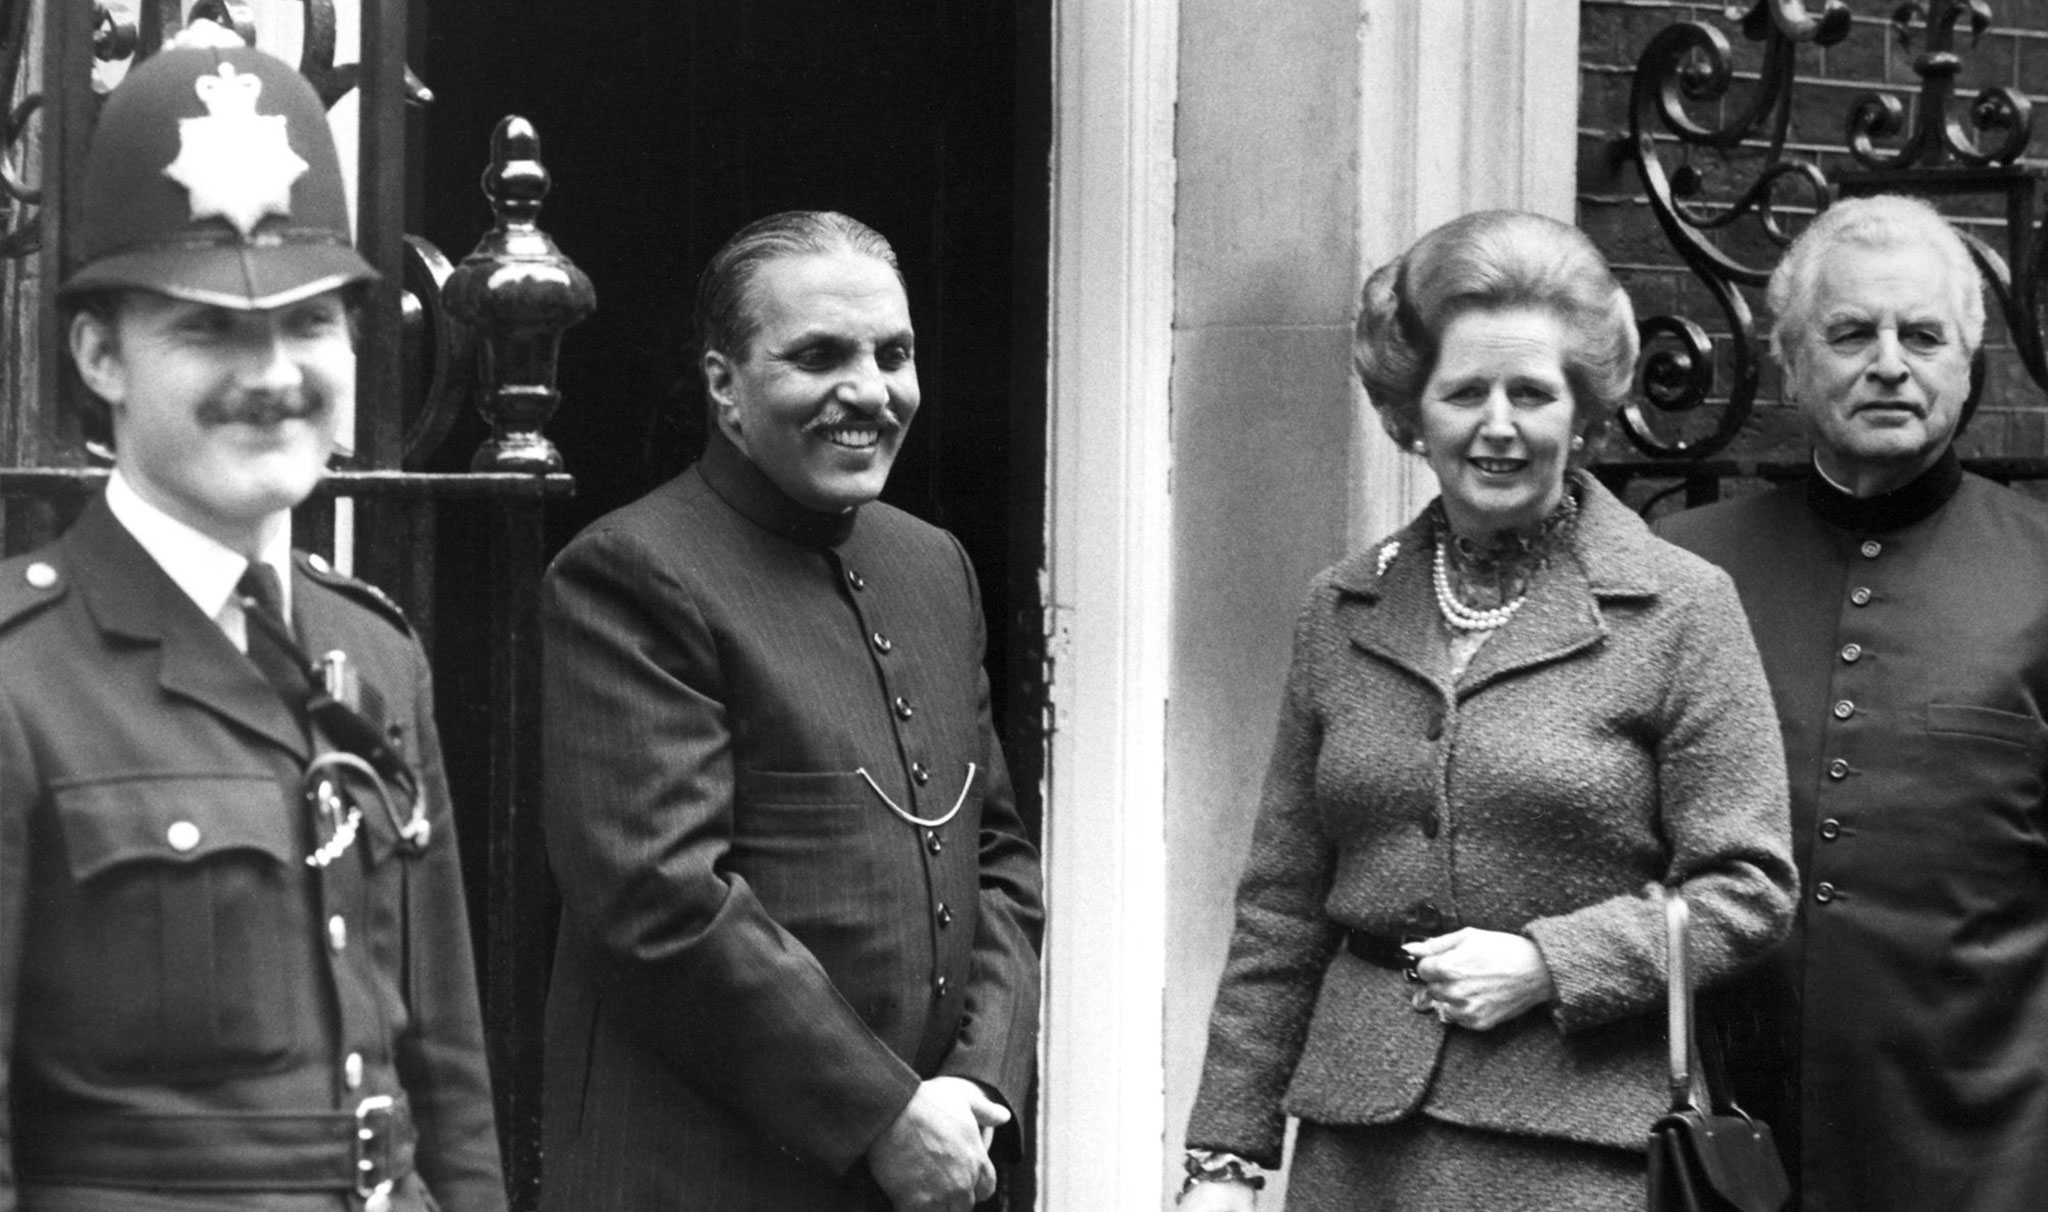 Margaret Thatcher receives Prime Minister of Pakistan Zia Ul-Haq at 10 Downing Street in London on October 6, 1980, UK.